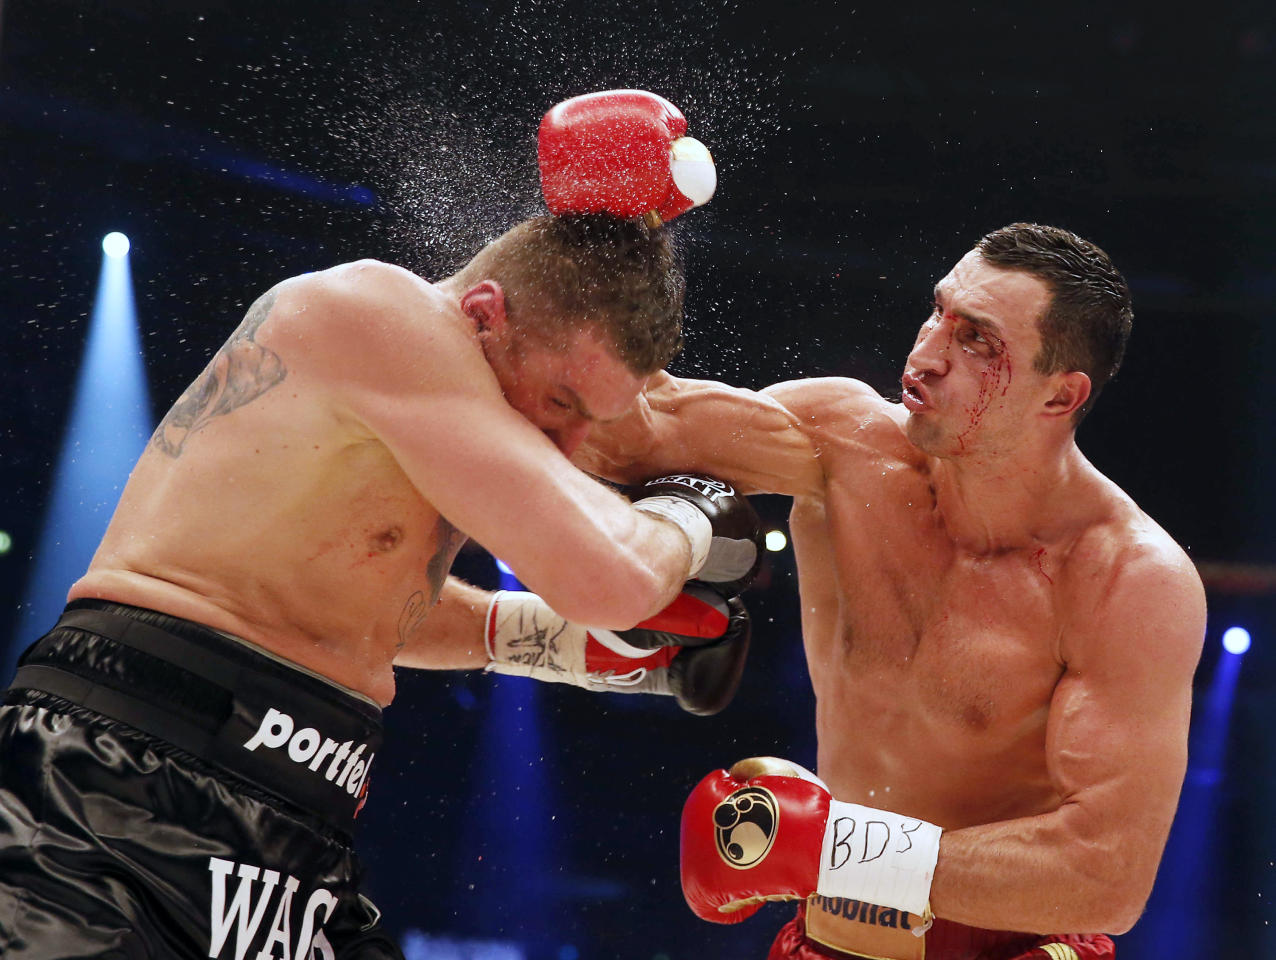 Ukrainian WBA, WBO, IBO and IBF heavy weight boxing world champion Vladimir Klitschko lands a blow on Polish challenger Mariusz Wach during their title bout in Hamburg November 10, 2012.  REUTERS/Morris Mac Matzen (GERMANY - Tags: SPORT BOXING)